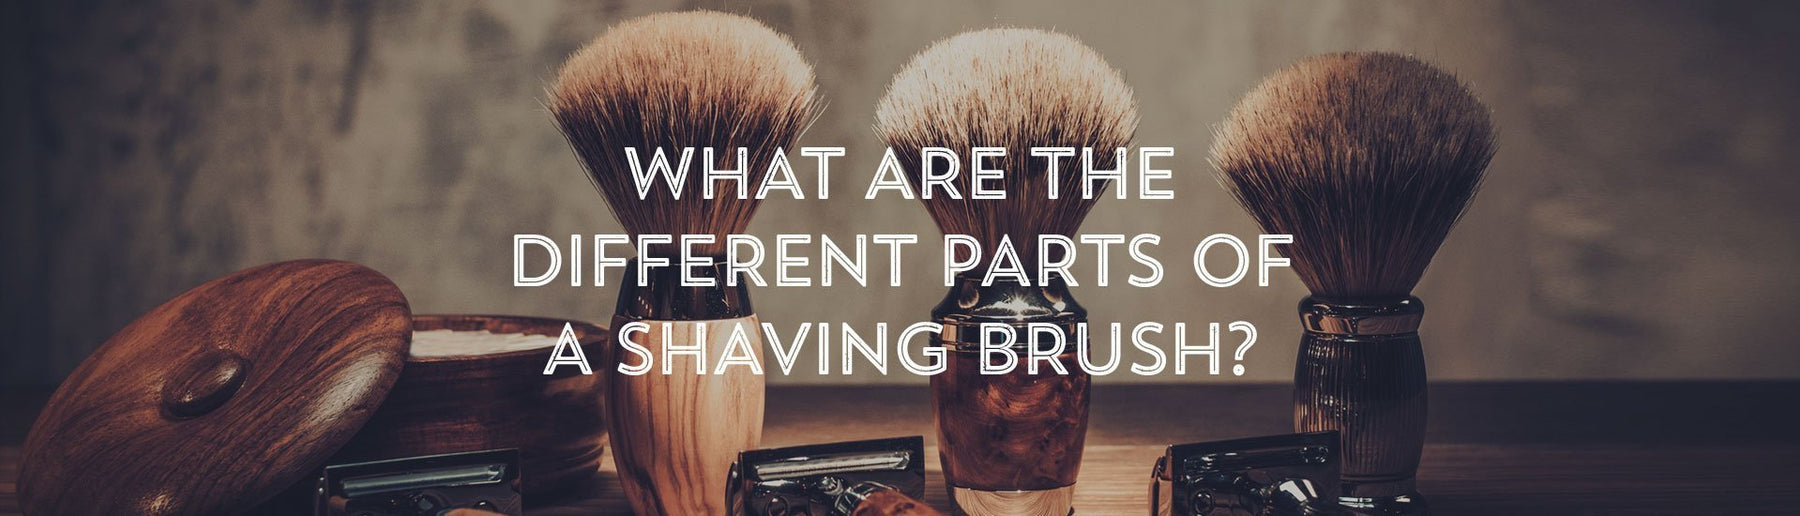 What Are The Different Parts of a Shaving Brush?-West Coast Shaving